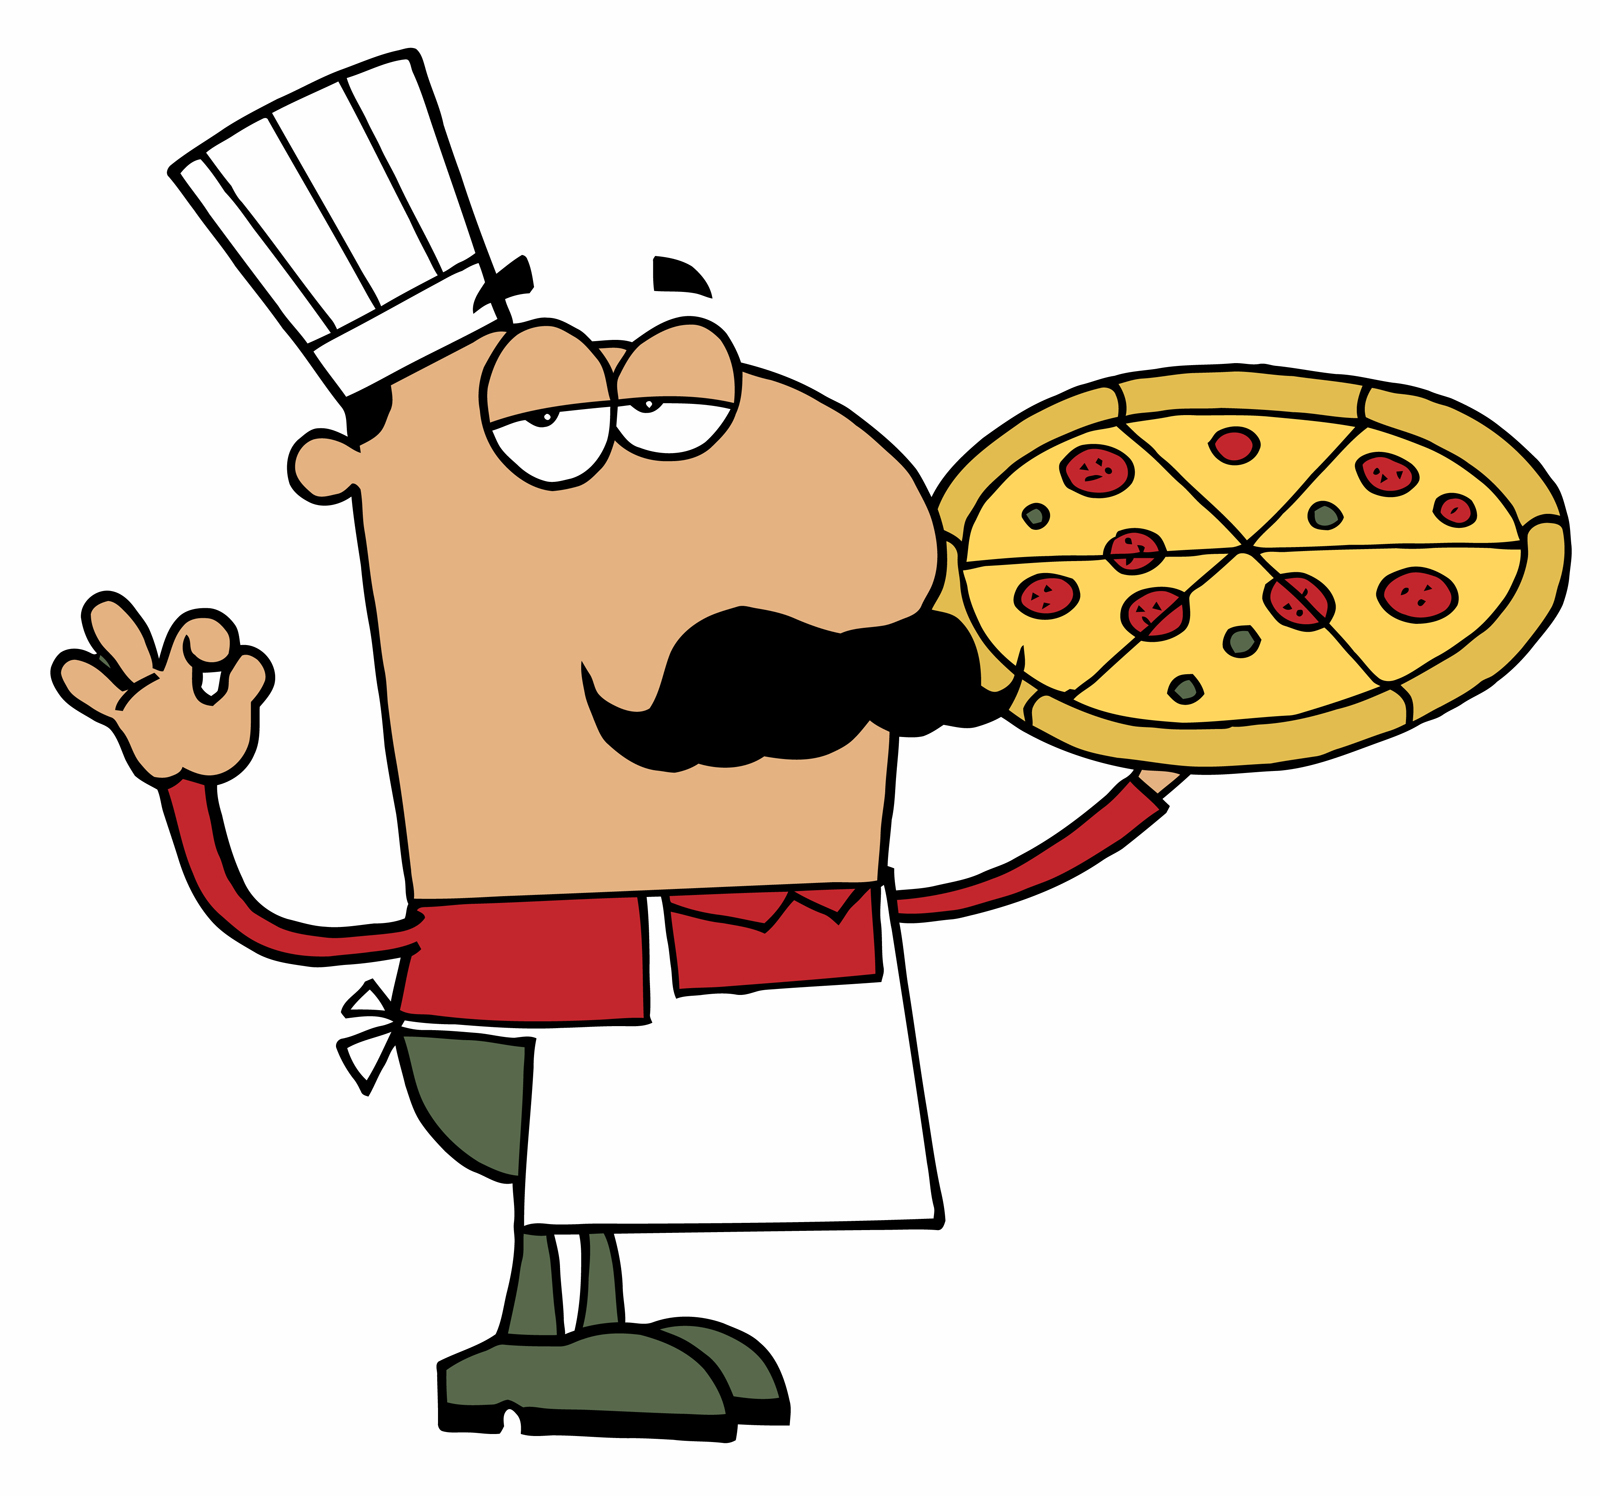 Cheese Pizza Clipart - Clipart Library-Cheese Pizza Clipart - Clipart library-4